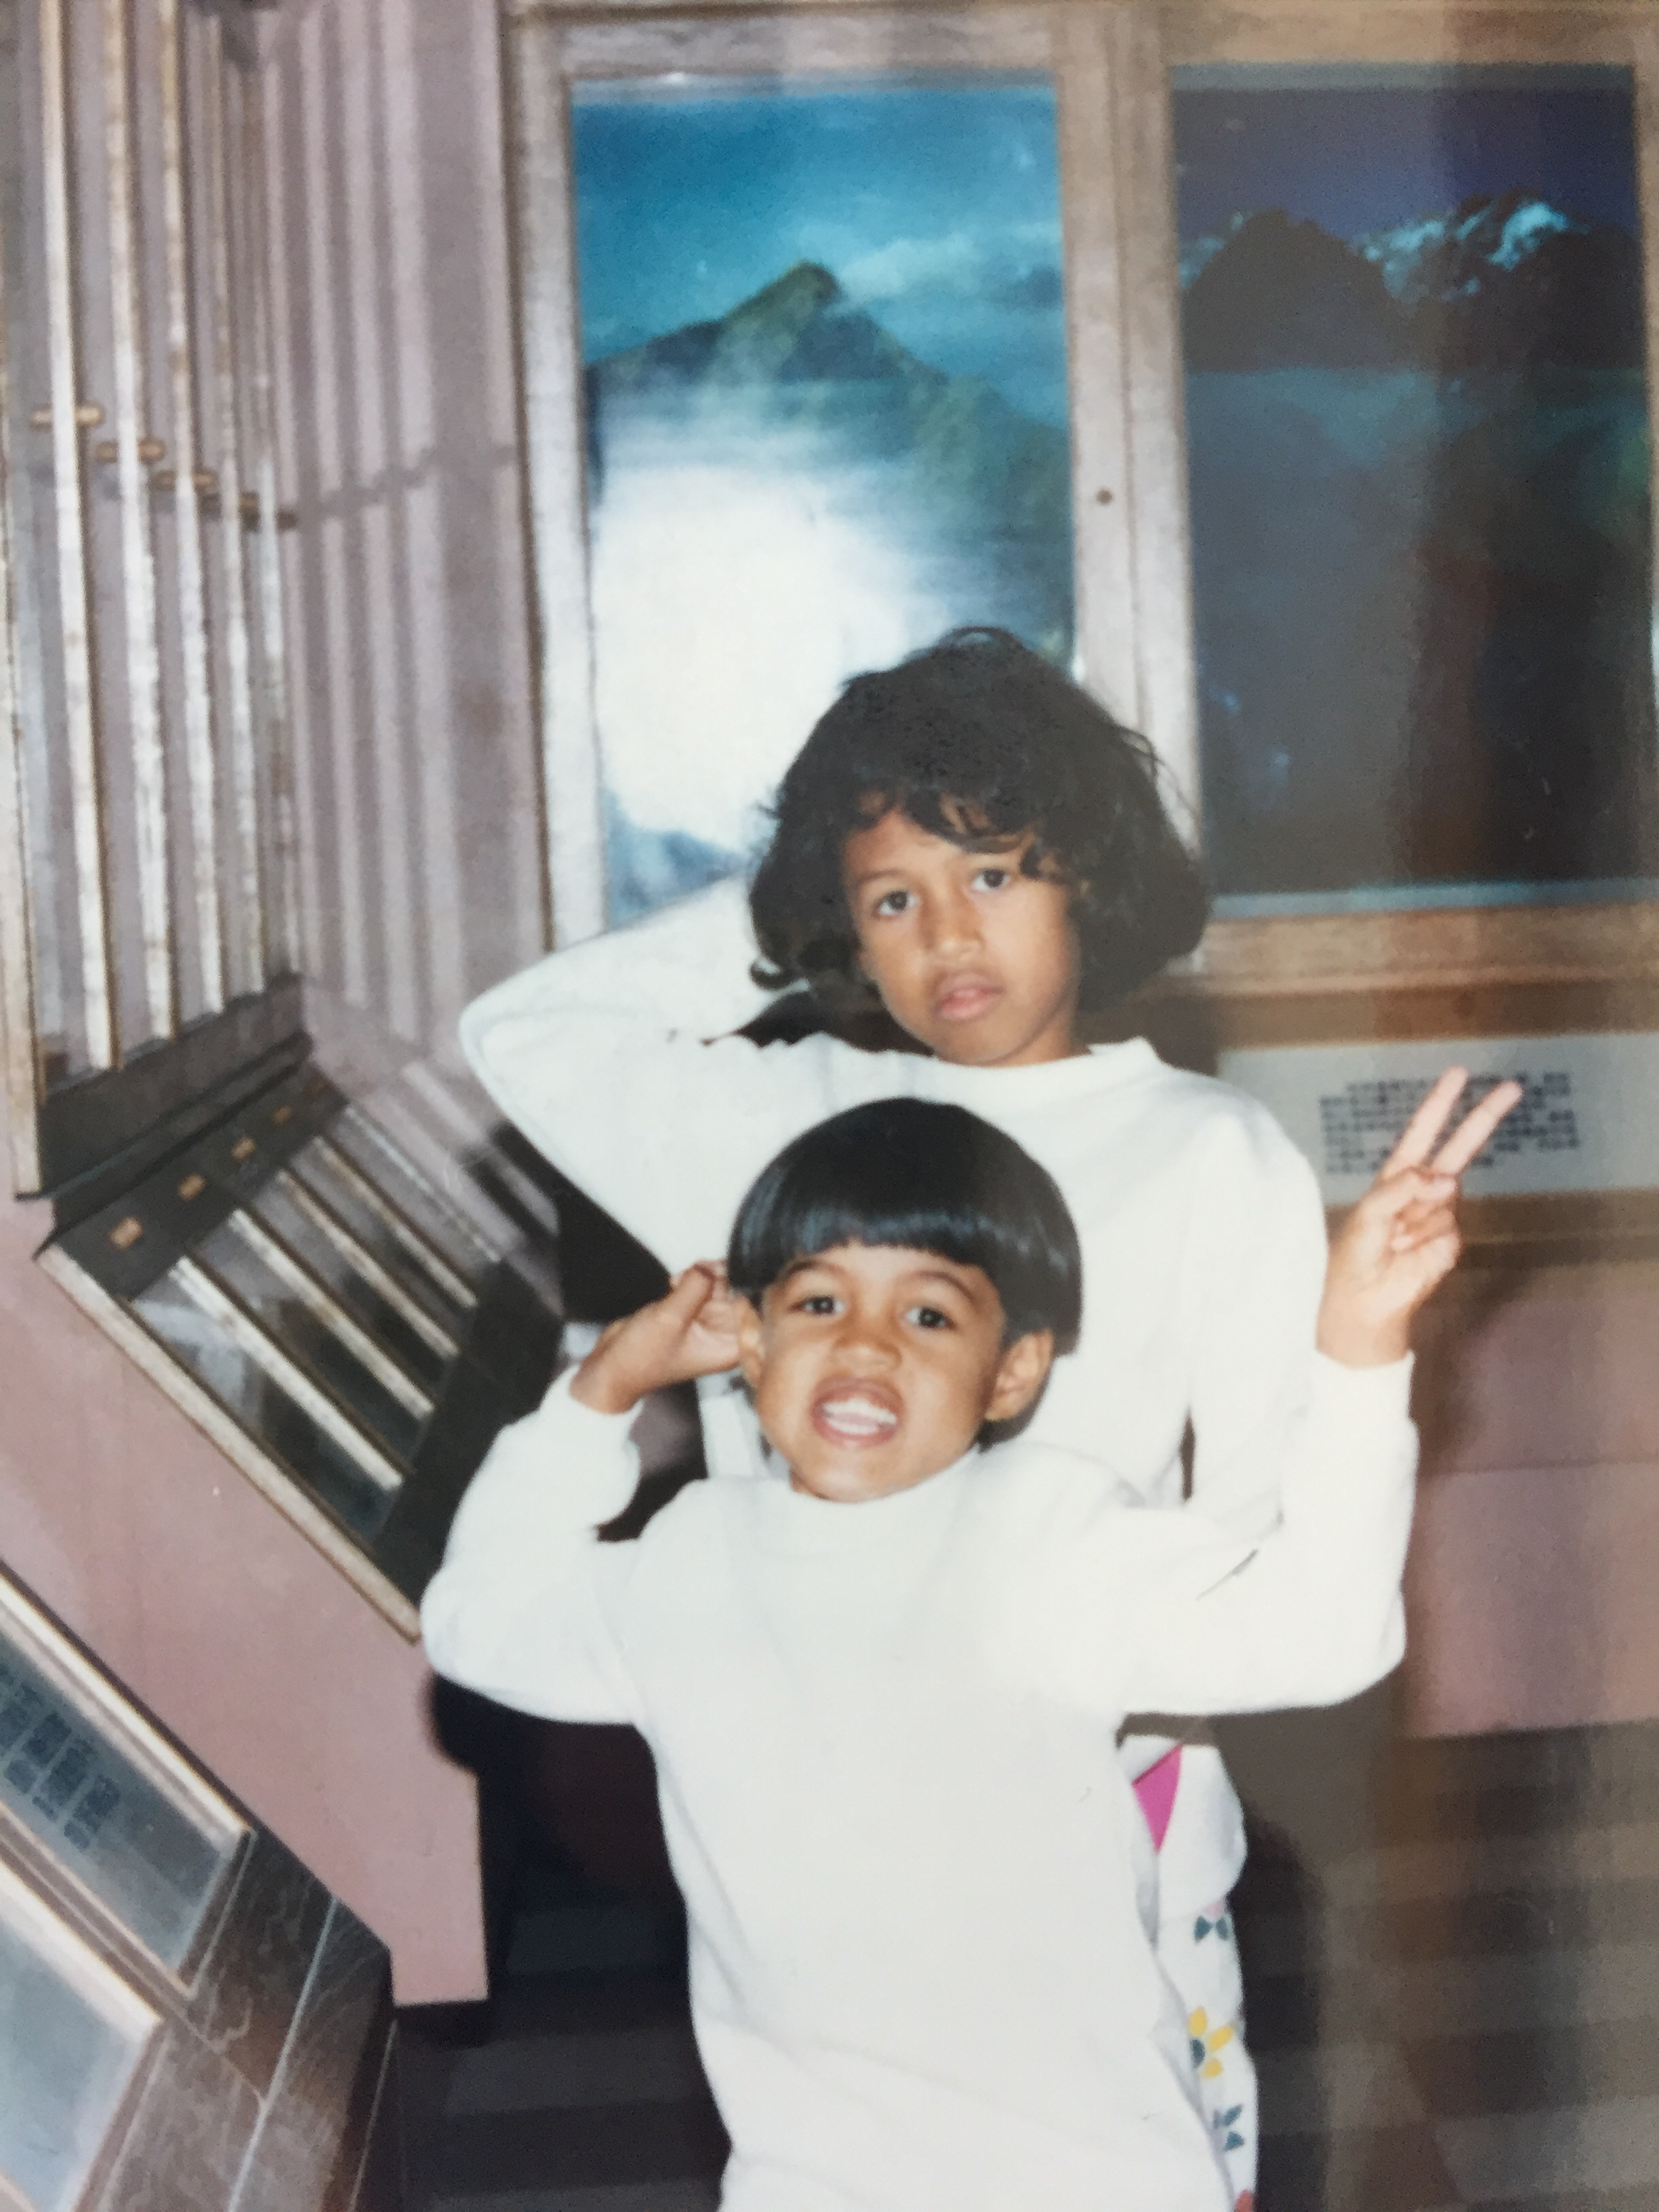 You can tell by the looks that we were 90's kids.